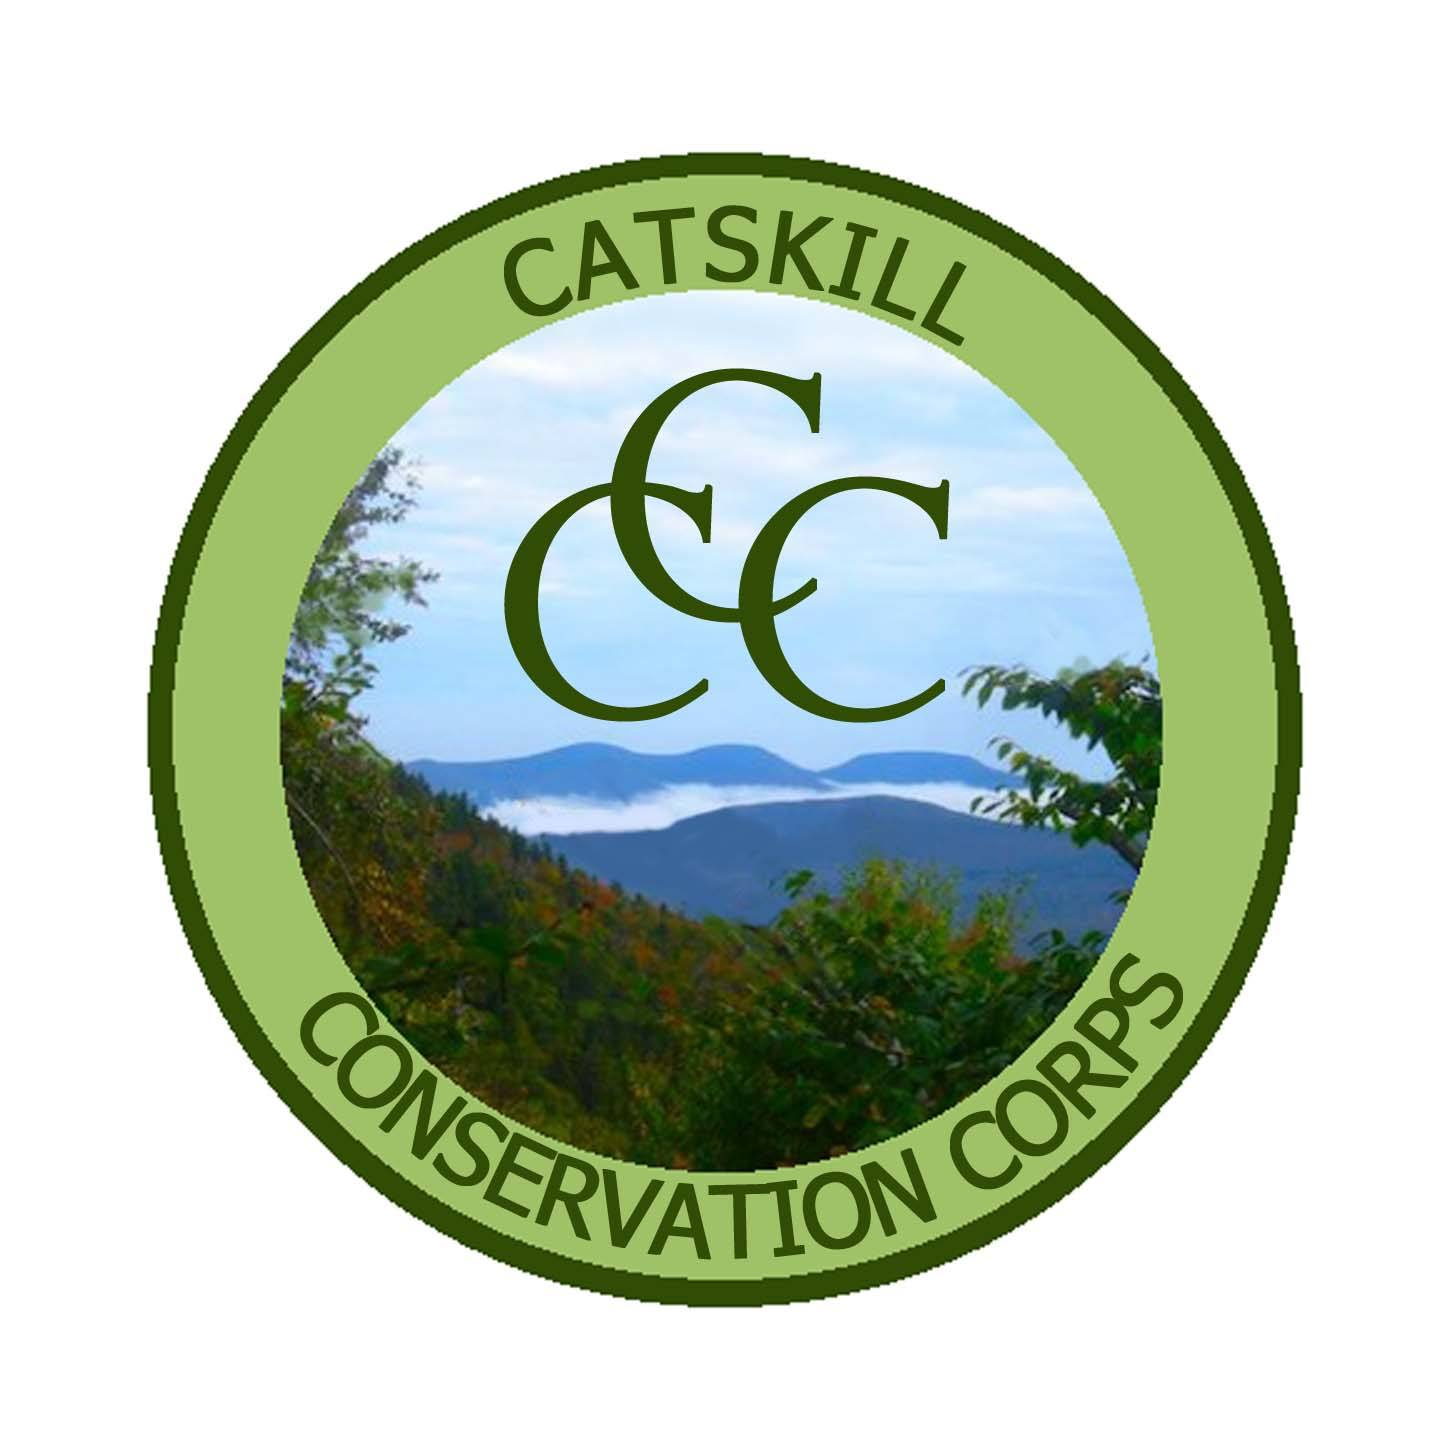 Catskill Conservation Corps